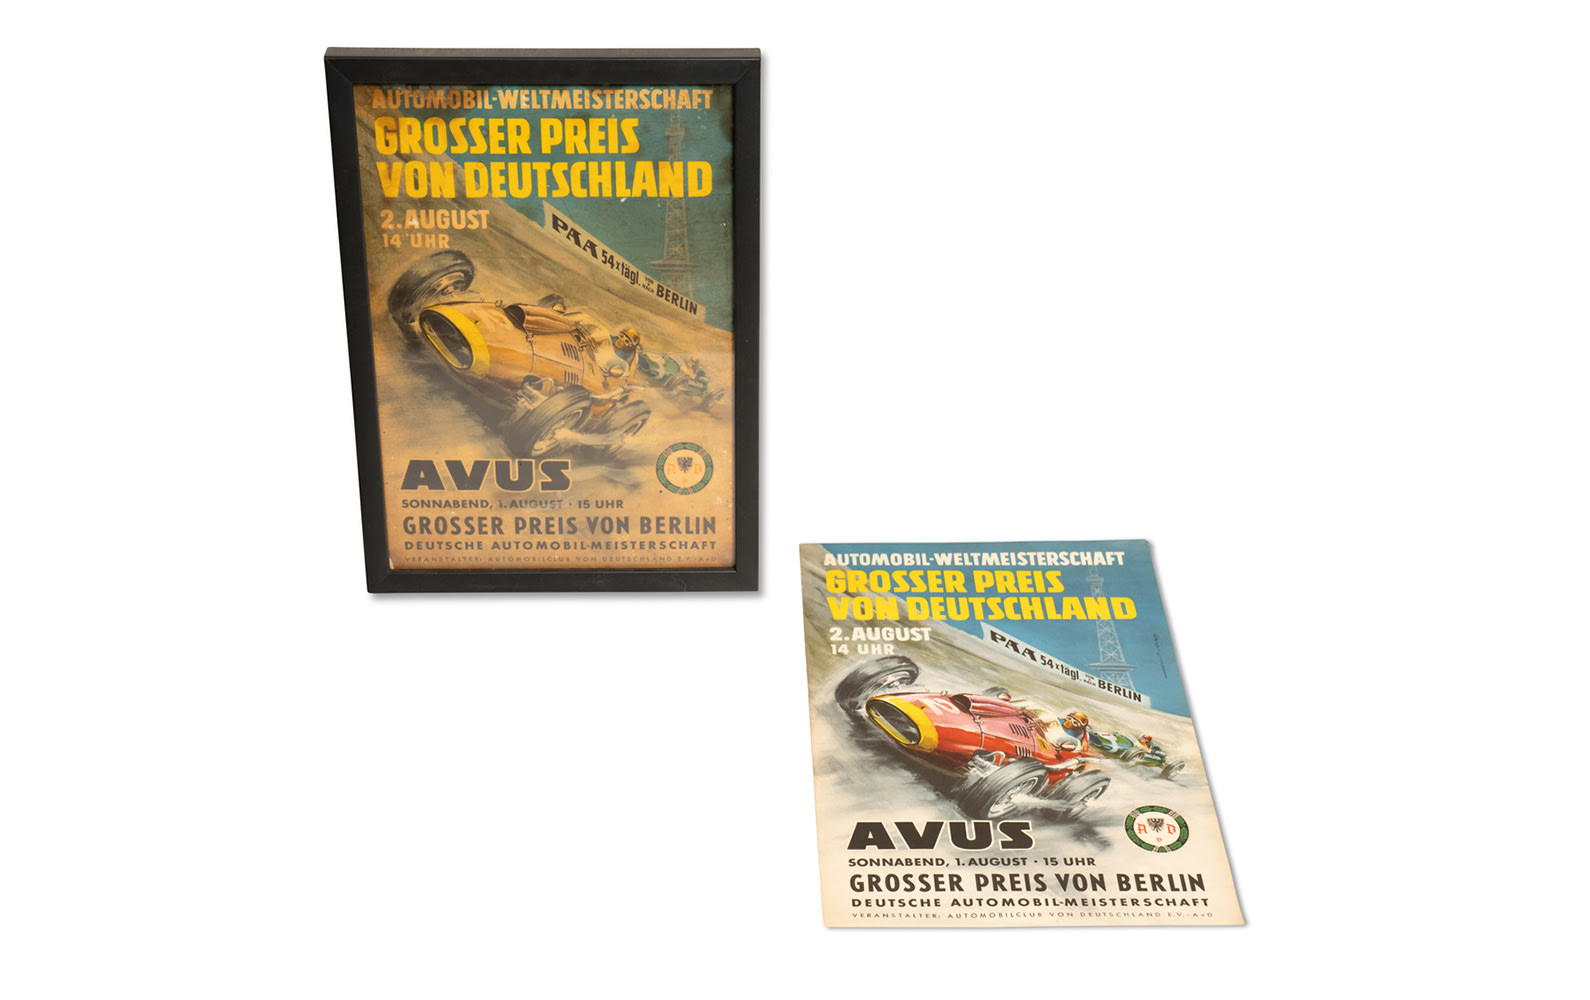 Two 1959 German Grand Prix Event Posters, One Framed and One Unframed